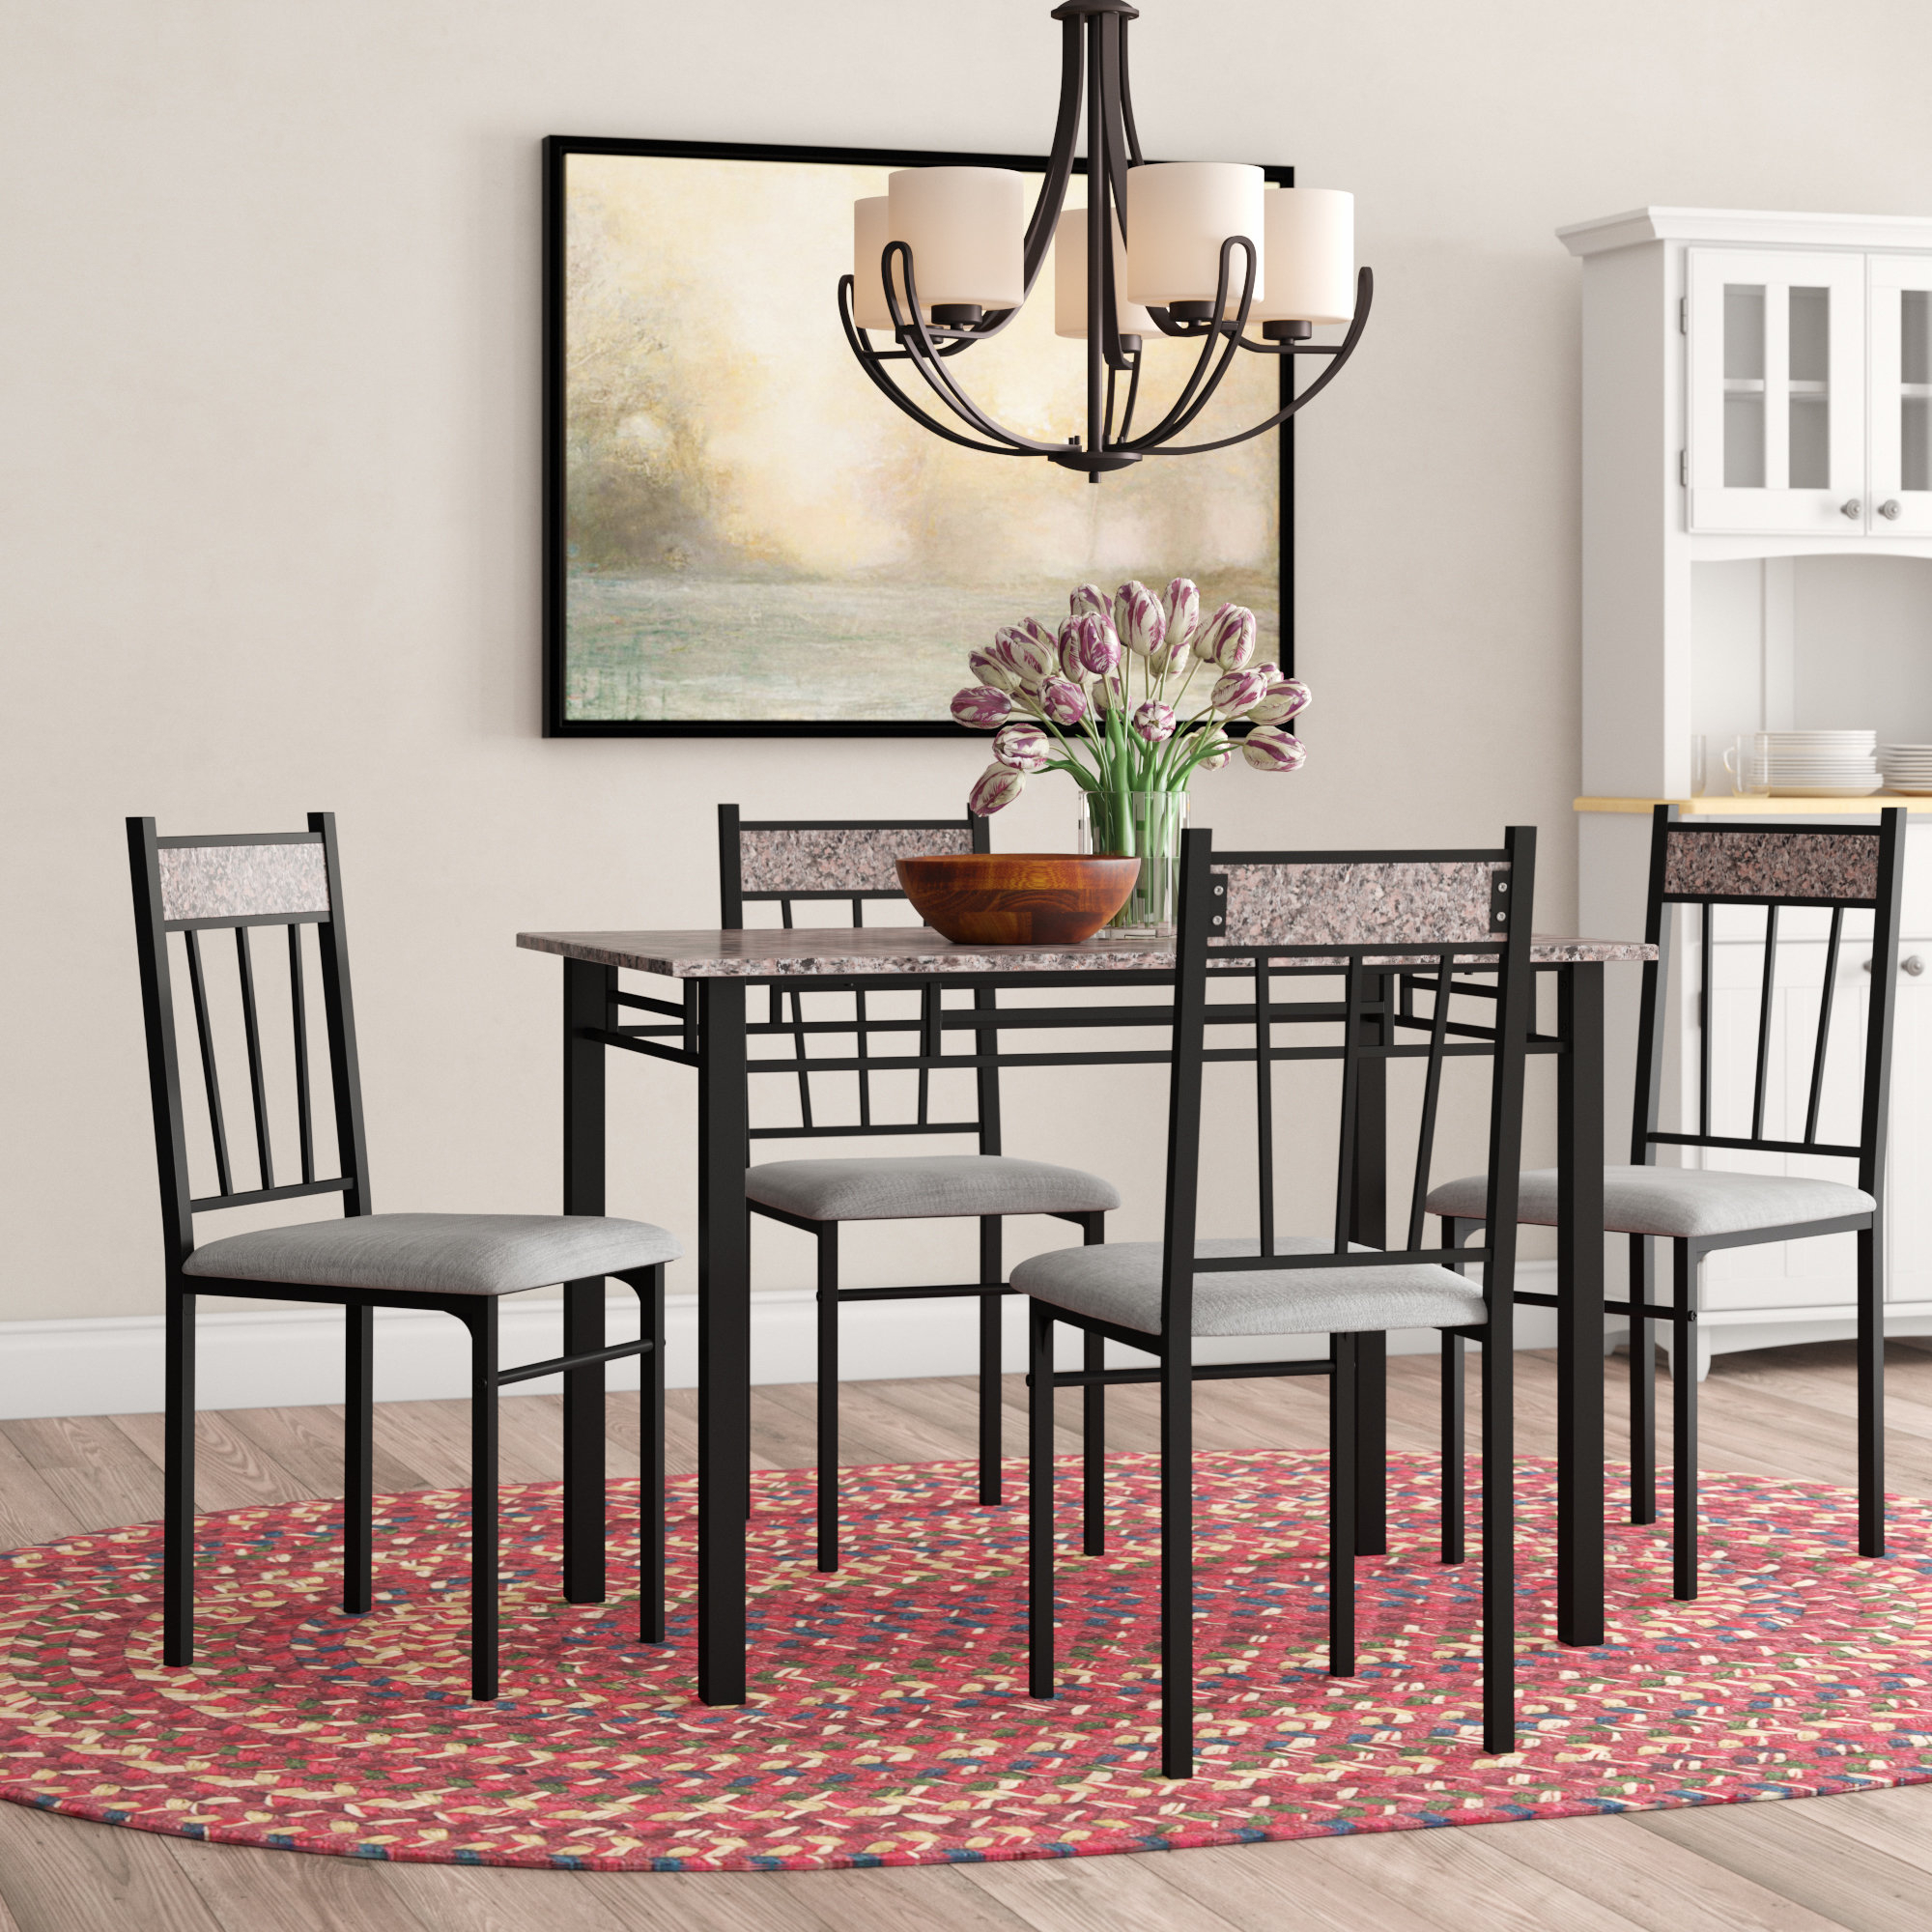 Caspar 5 Piece Dining Set Inside Newest Lightle 5 Piece Breakfast Nook Dining Sets (Image 3 of 20)